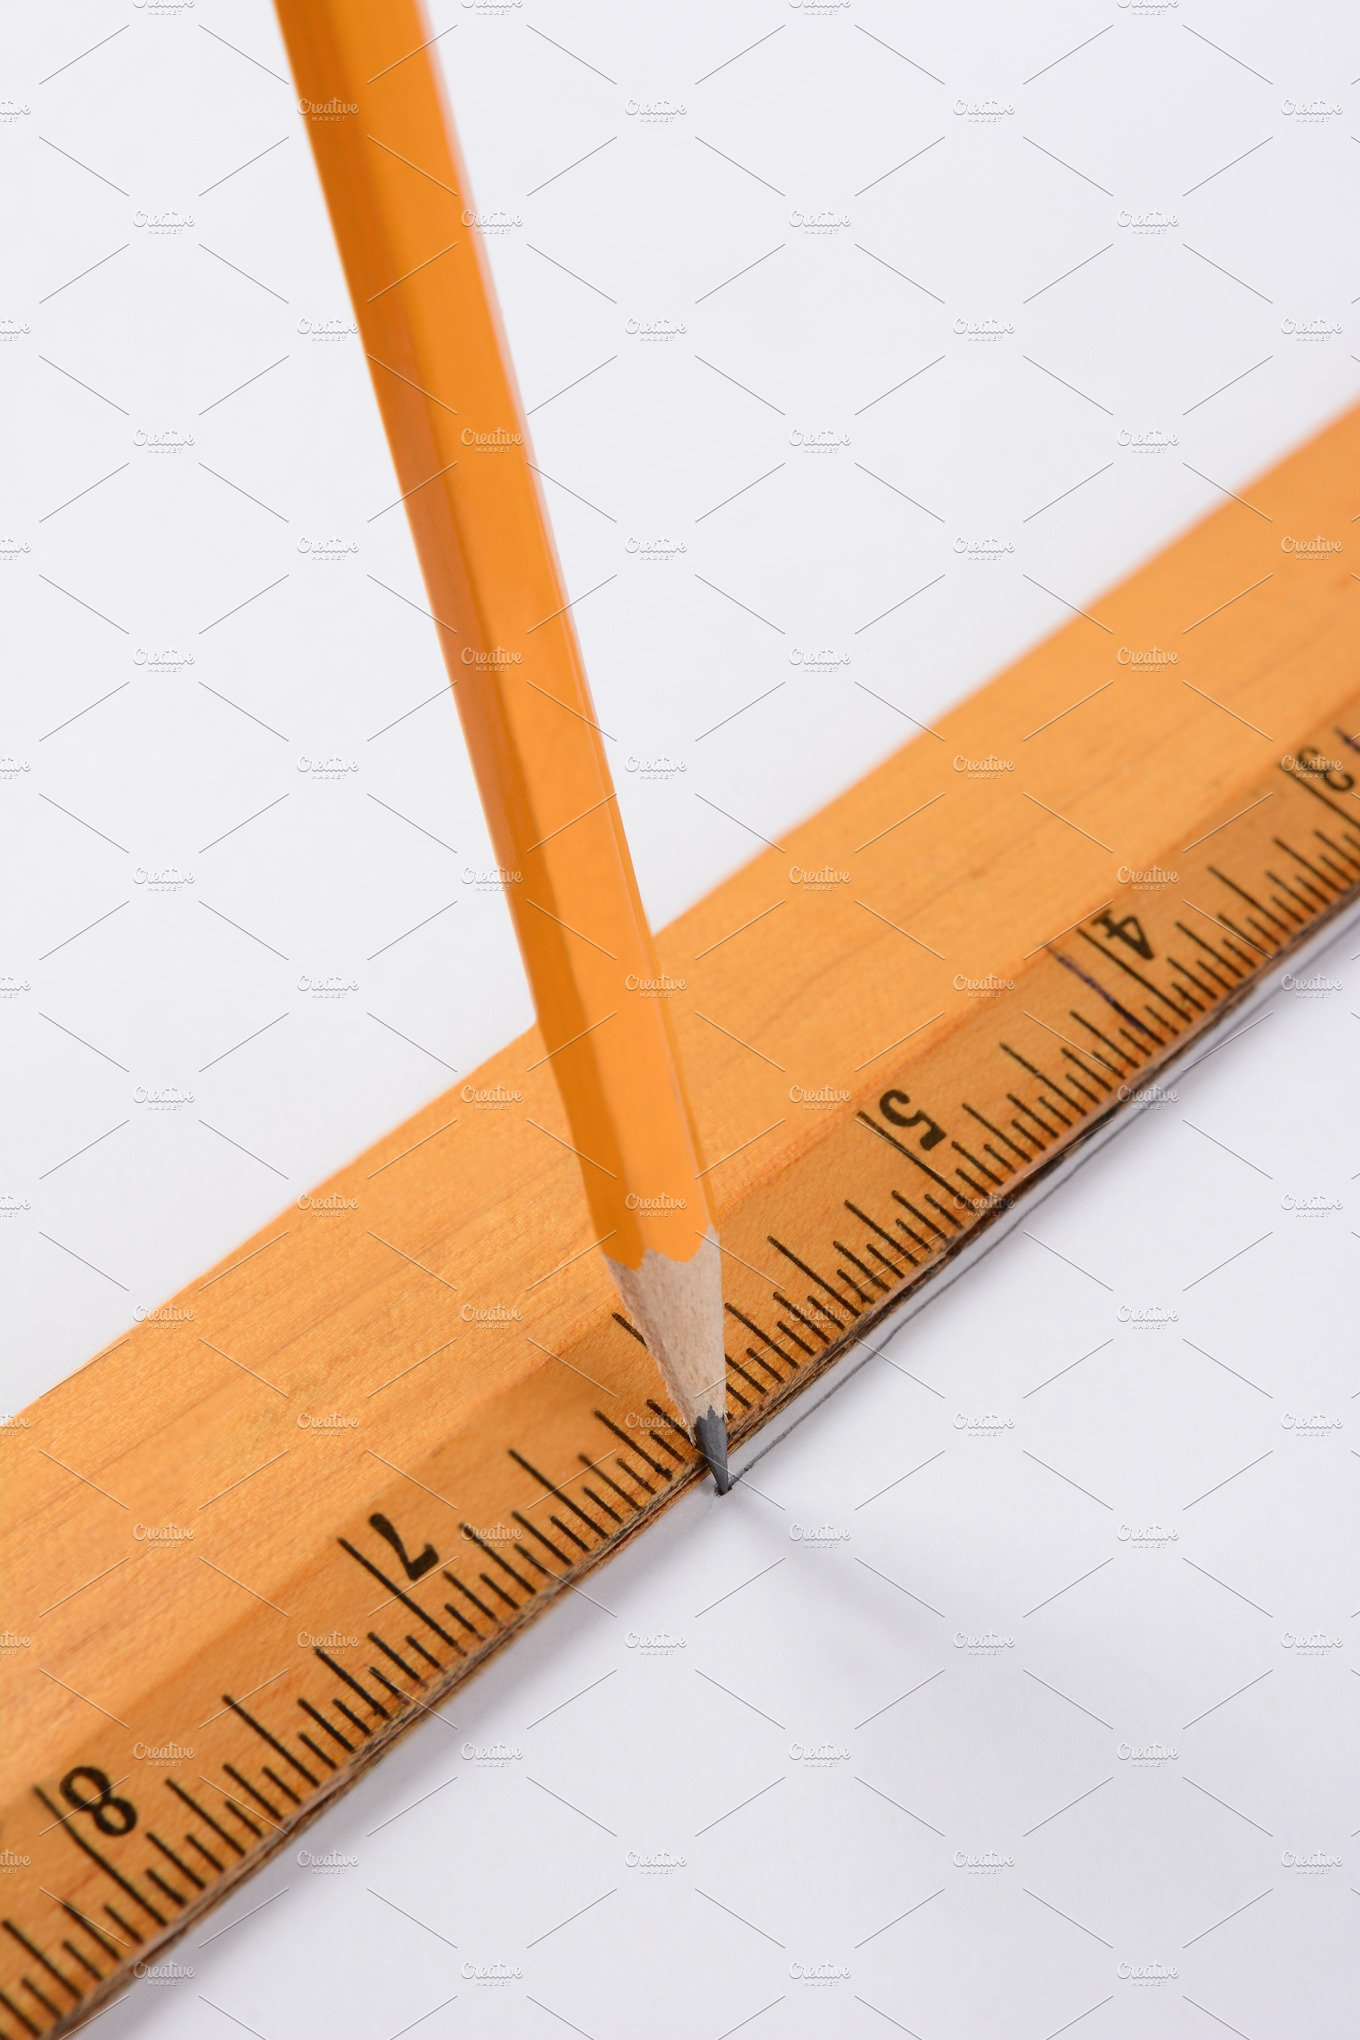 Drawing Lines With A Ruler : Pencil and ruler education photos creative market